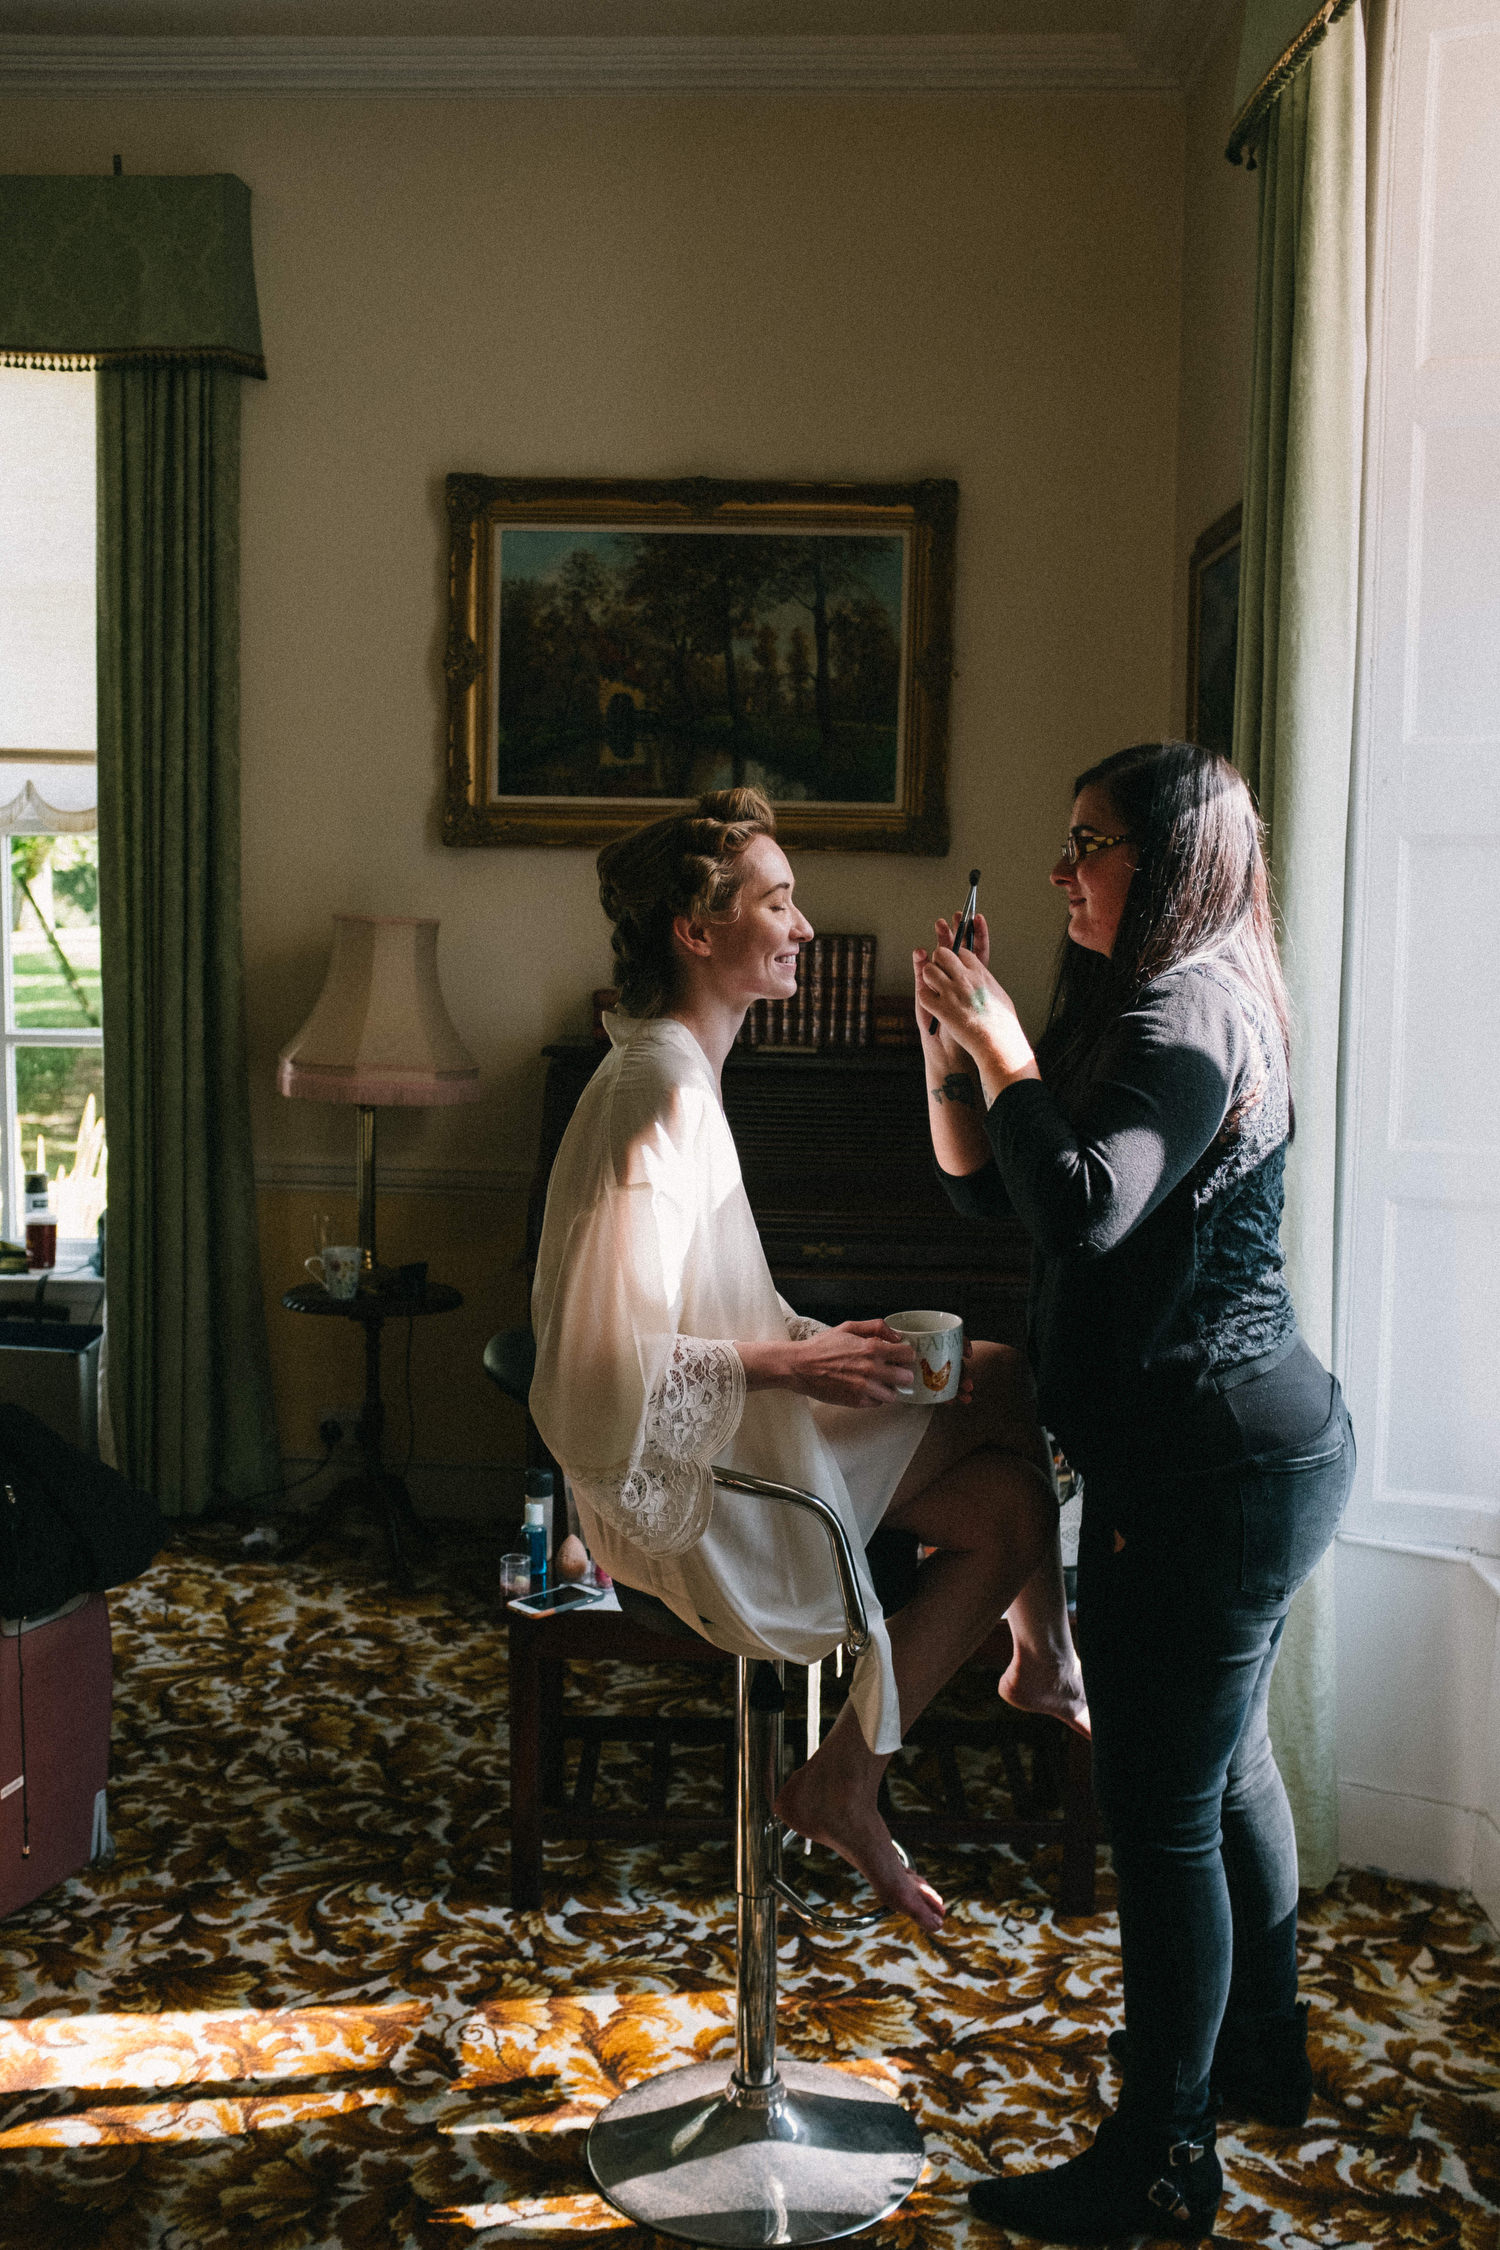 000000000000000000000037_bride_style_preparation_vintage_Hair_dress_photography_david_mcclelland_ireland_makeup_castle_hollywood_kinnity_wedding_photographer_fujifilm